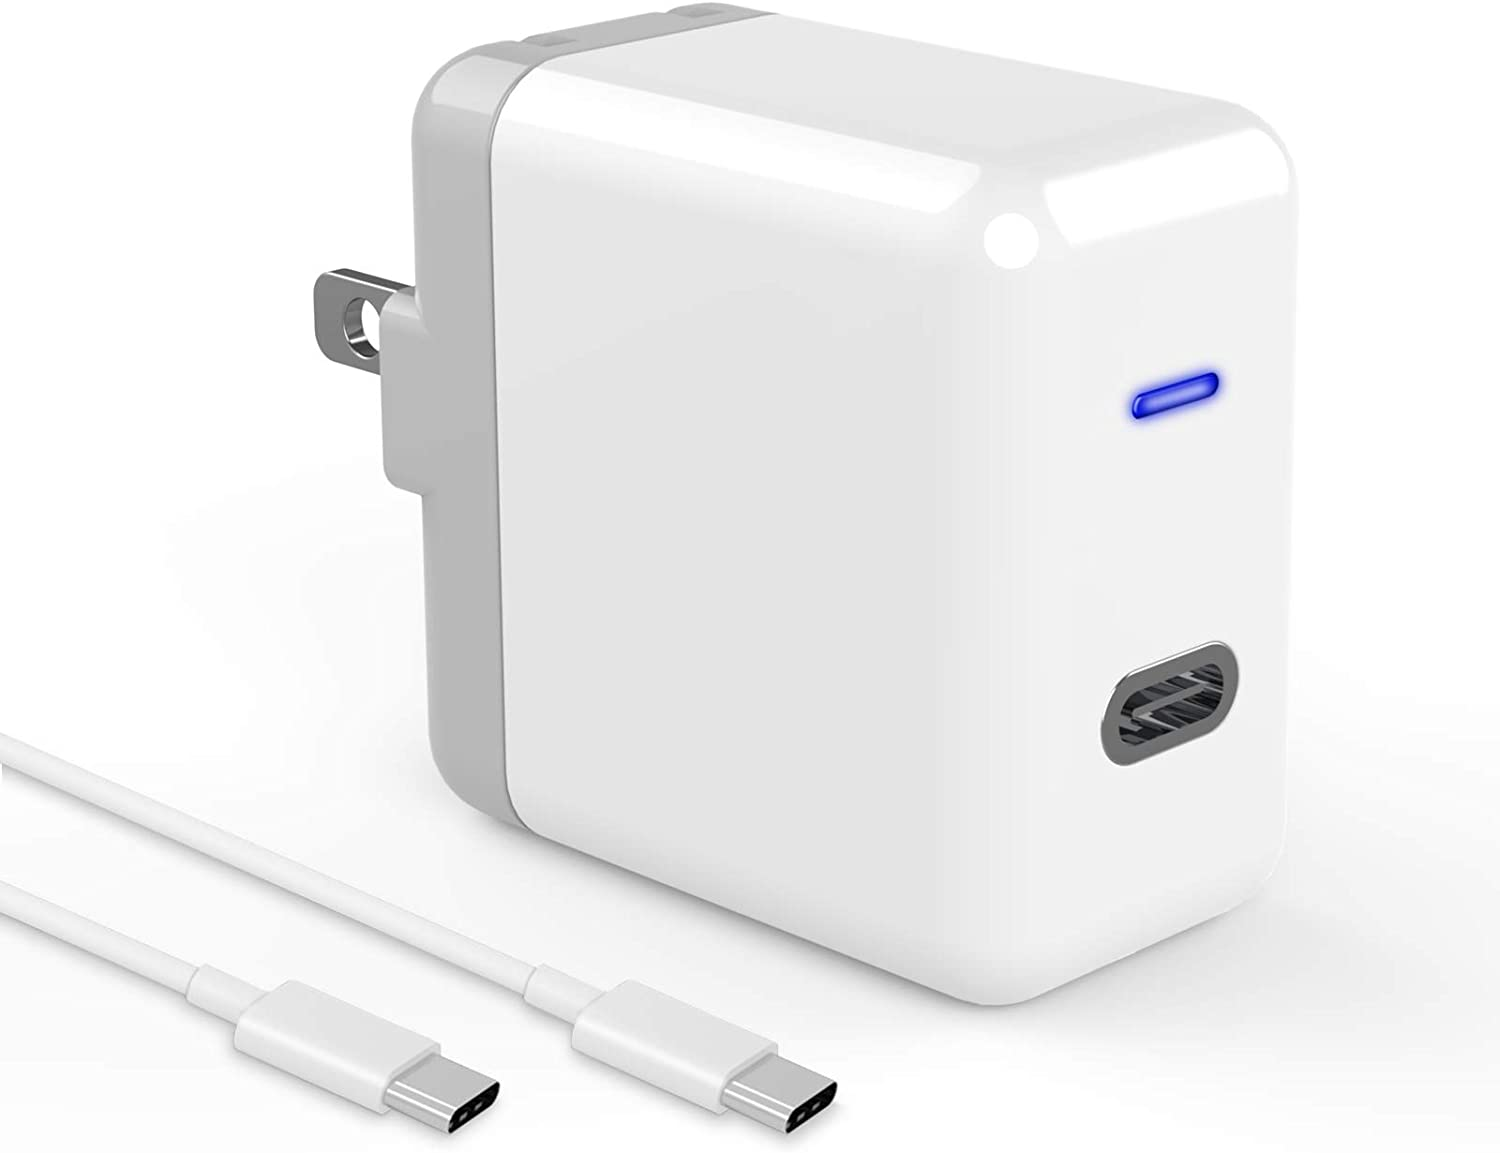 18W USB C Fast Charger for i-Phone 12/11, Compatible with i-Pad Pro 12.9, Pro 11 inch 2020/2018, Fast Wall Charger Type C for Galaxy S20/S10/S9, Pixel 5/4/3/2 Power Adapter with 6.6ft USB C to C Cable